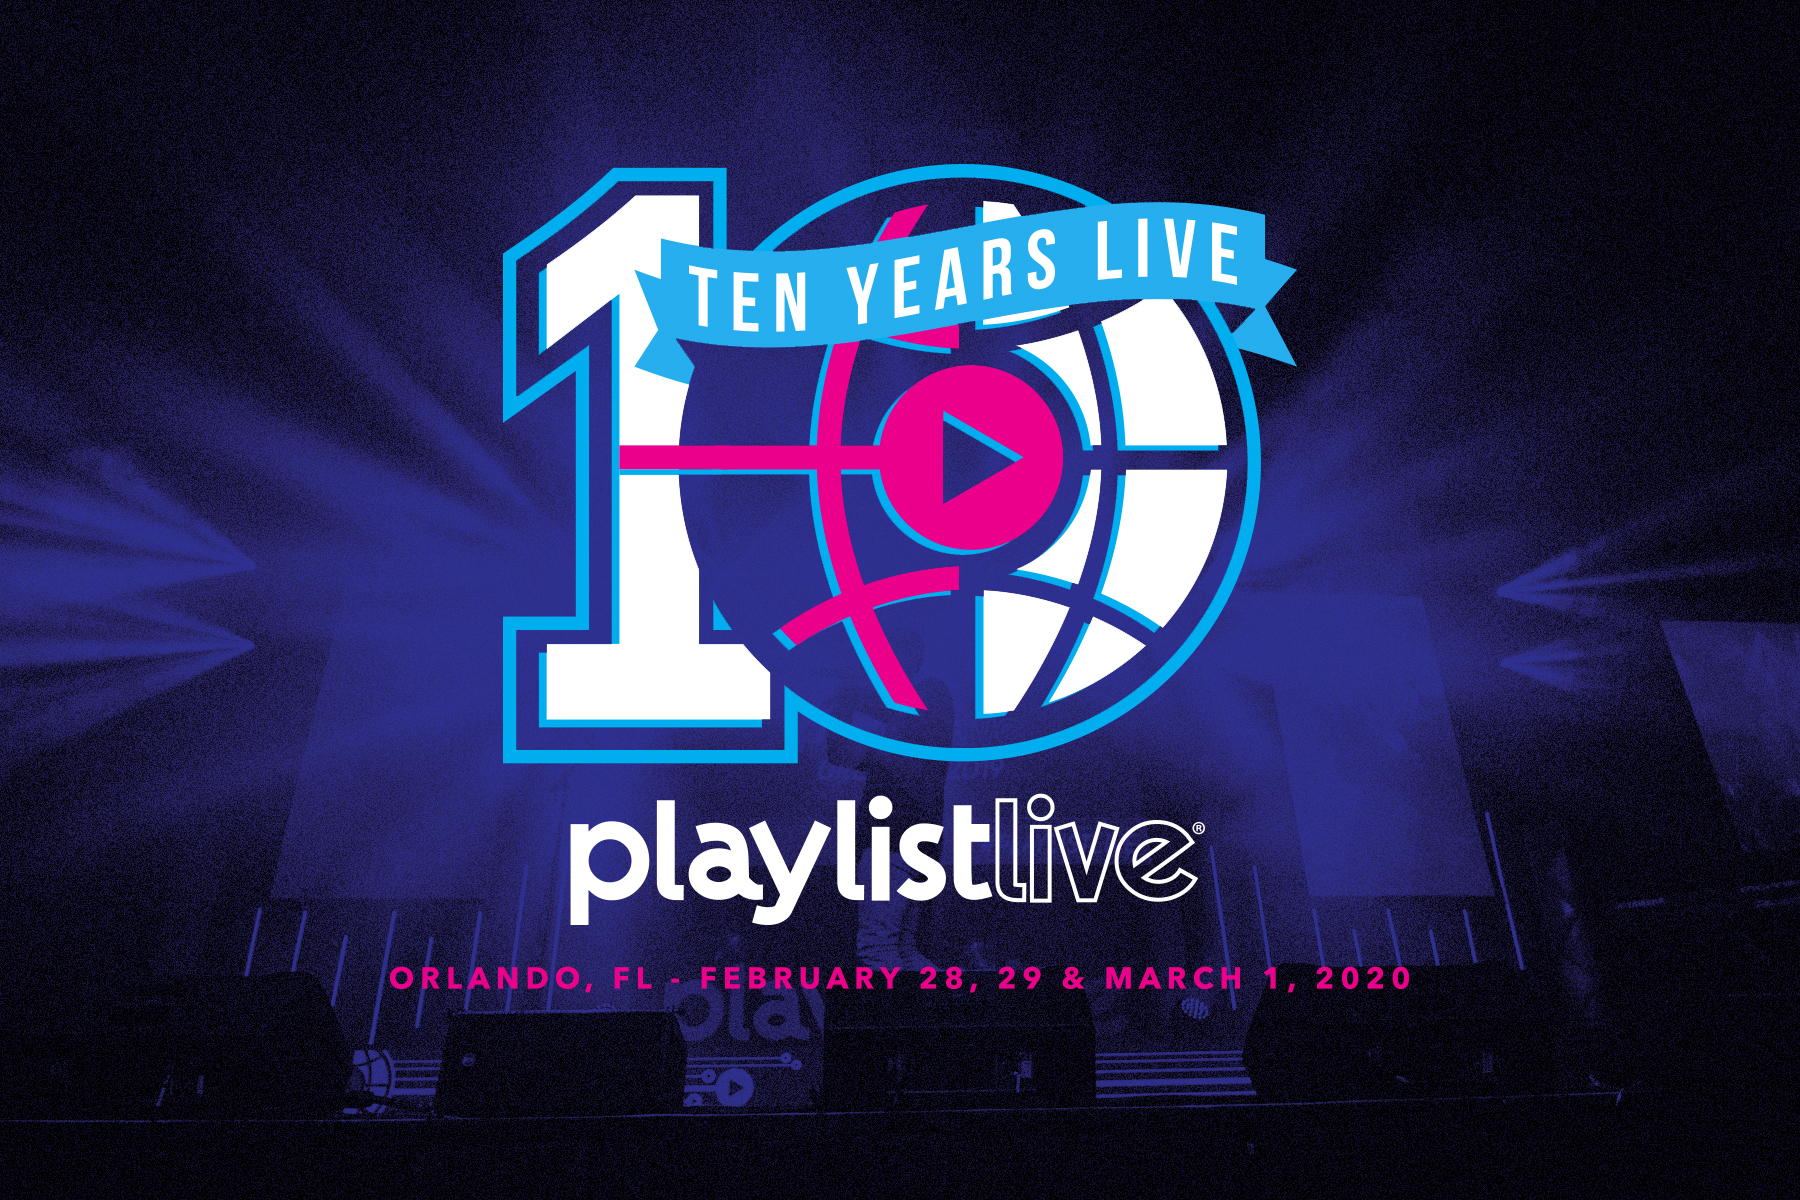 Dantdm Us Tour Dates 2020 Playlist Live – The Ultimate Creator Event – 10 Year Anniversary